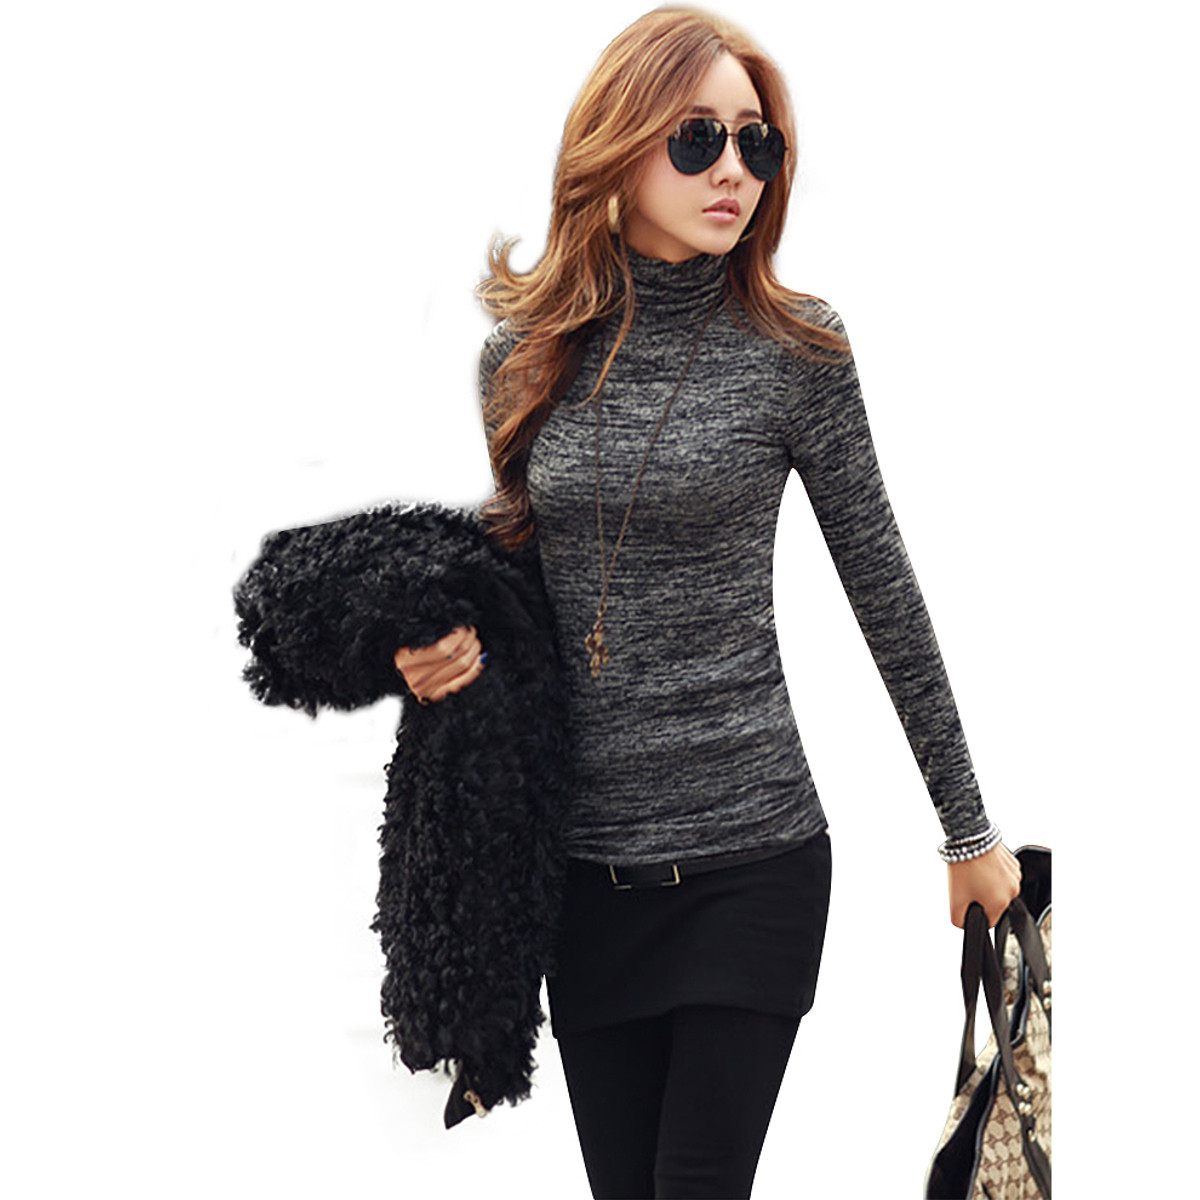 87cb8b4f6a9a86 ZANZEA New Women Fashion High Neck Sweaters Lady Casual Long Sleeve Slim  Fit Knitted Pullovers Autumn Knitwear Plus Size S 3XL-in Pullovers from  Women's ...